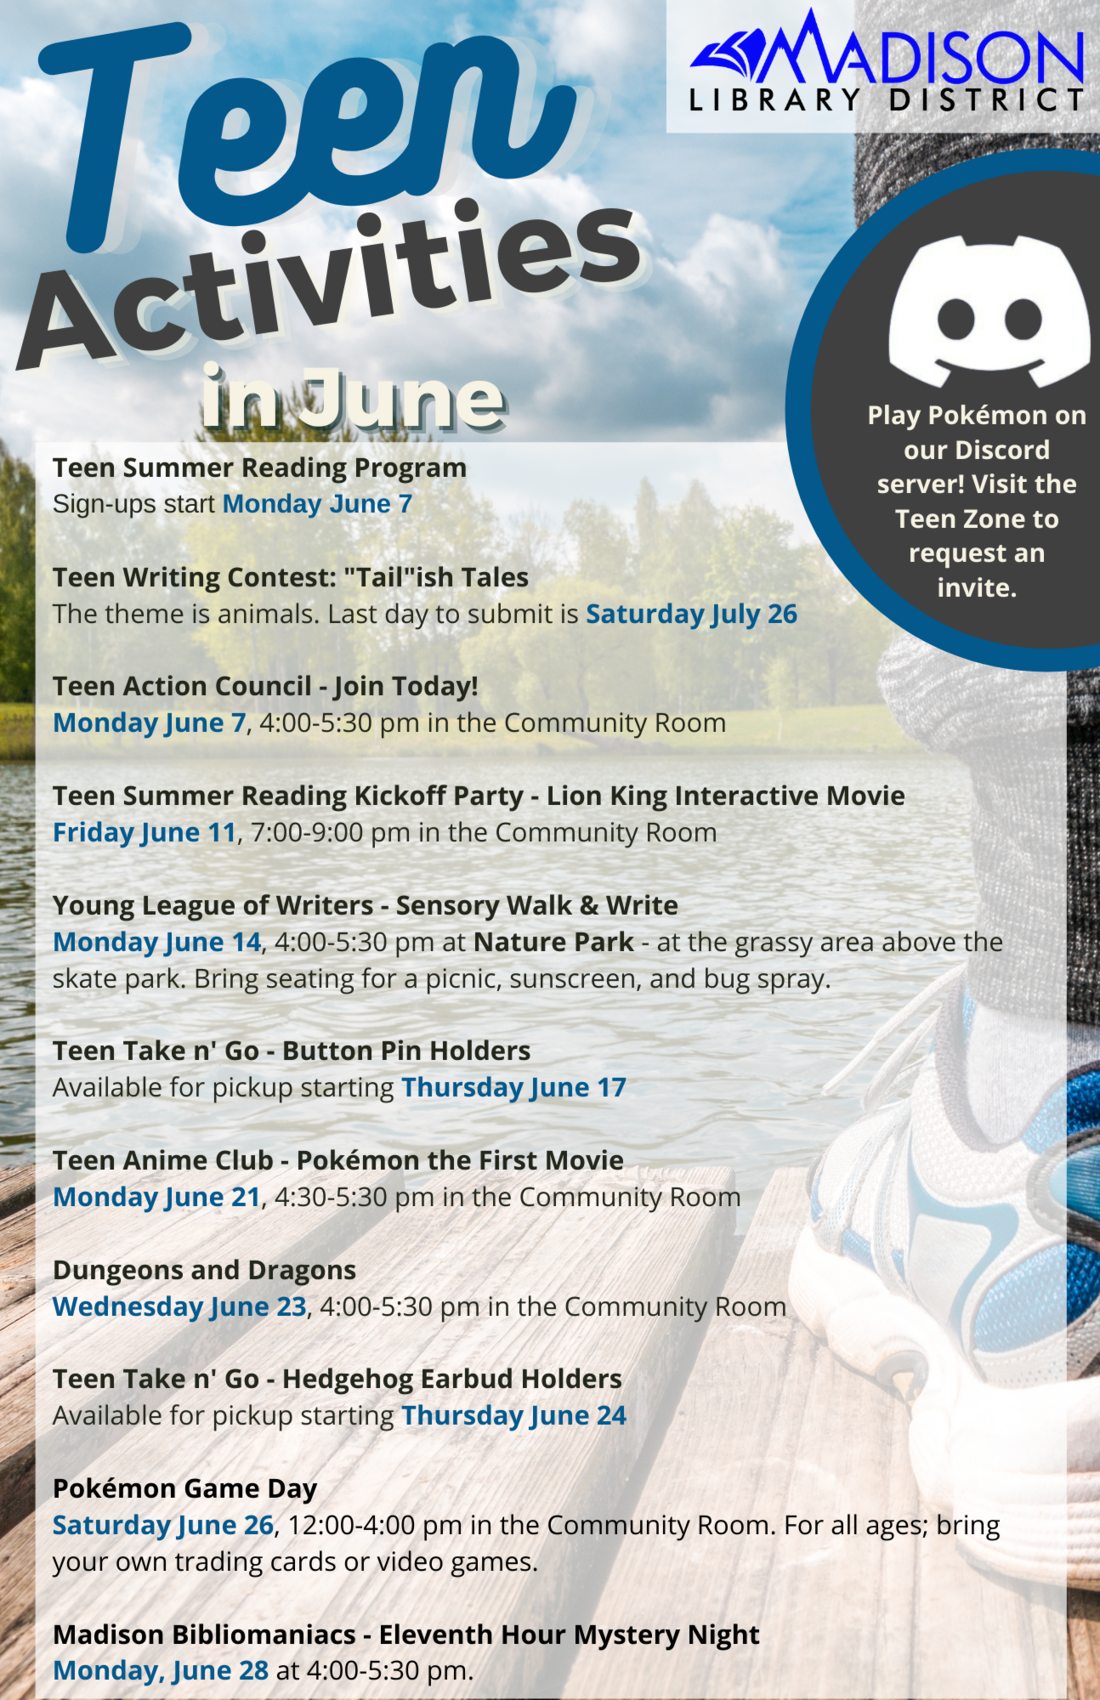 """Teen activities in June. Play pokemon on our discord server! Visit the teen zone to request an invite. Teen Summer Reading Program Sign-ups start Monday June 7  Teen Writing Contest: """"Tail""""ish Tales The theme is animals. Last day to submit is Saturday July 26  Teen Action Council - Join Today! Monday June 7, 4:00-5:30 pm in the Community Room  Teen Summer Reading Kickoff Party - Lion King Interactive Movie Friday June 11, 7:00-9:00 pm in the Community Room  Young League of Writers - Sensory Walk & Write Monday June 14, 4:00-5:30 pm at Nature Park - at the grassy area above the skate park. Bring seating for a picnic, sunscreen, and bug spray.  Teen Take n' Go - Button Pin Holders Available for pickup starting Thursday June 17  Teen Anime Club - Pokémon the First Movie Monday June 21, 4:30-5:30 pm in the Community Room  Dungeons and Dragons Wednesday June 23, 4:00-5:30 pm in the Community Room  Teen Take n' Go - Hedgehog Earbud Holders Available for pickup starting Thursday June 24  Pokémon Game Day Saturday June 26, 12:00-4:00 pm in the Community Room. For all ages; bring your own trading cards or video games.  Madison Bibliomaniacs - Eleventh Hour Mystery Night Monday, June 28 at 4:00-5:30 pm."""